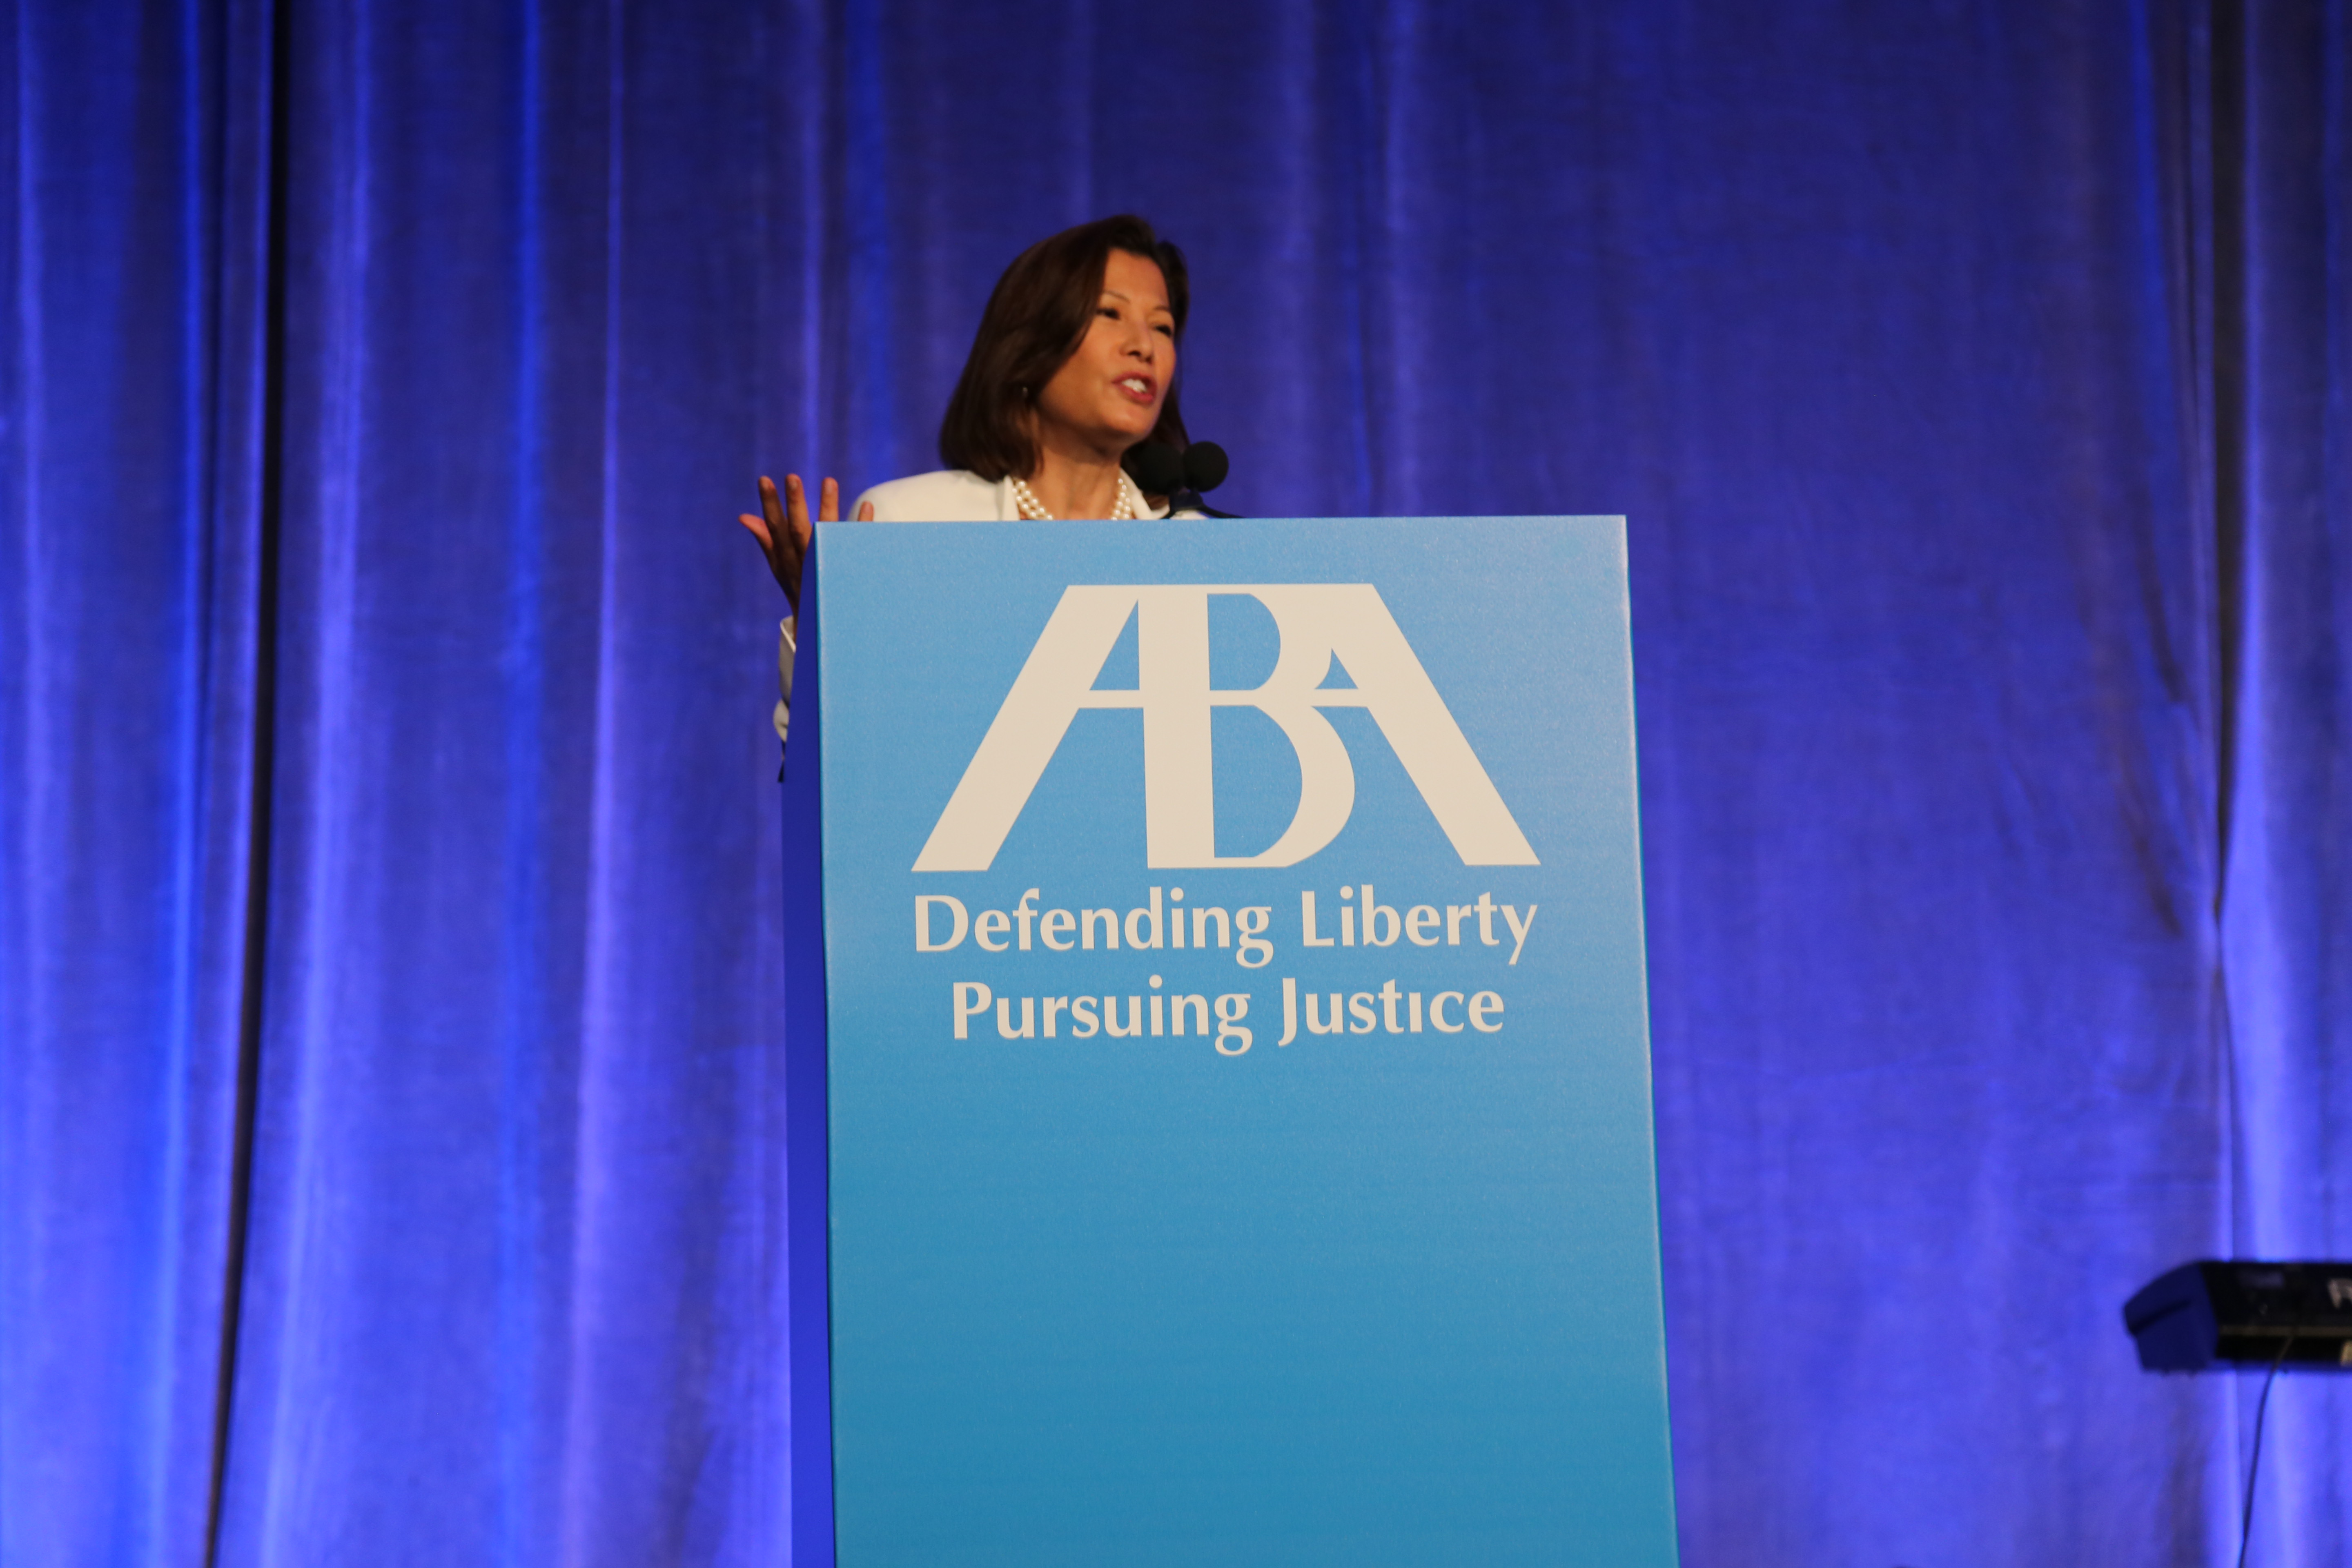 Chief Justice Cantil-Sakauye Gives Keynote Speech at ABA Annual Meeting 2016